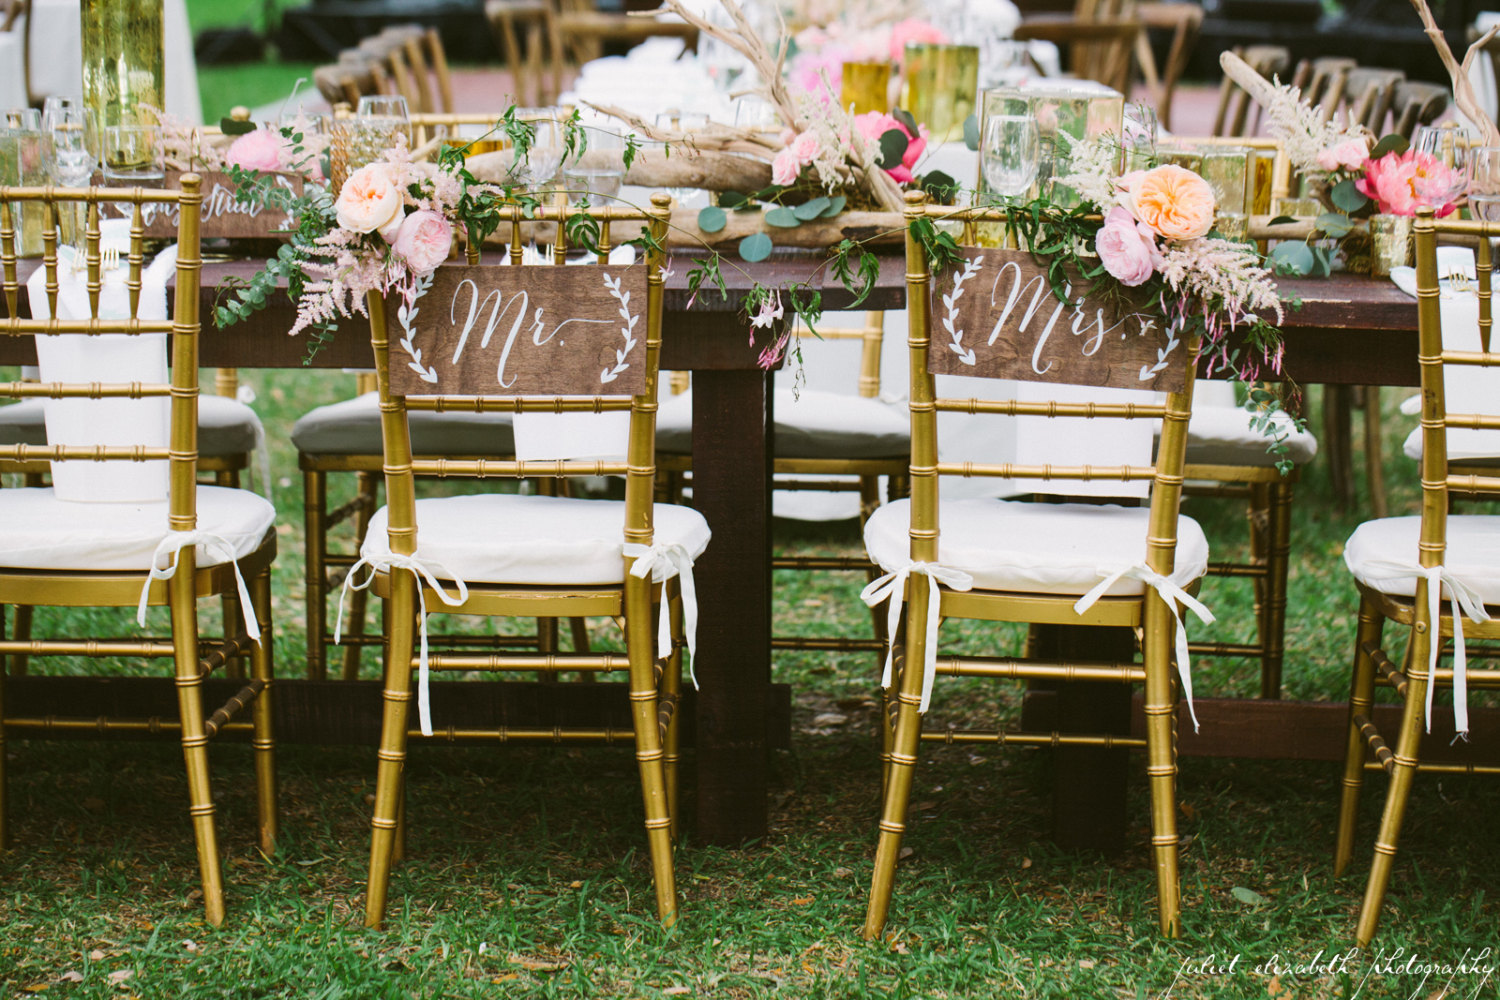 cute wooden chair signs | via bride and groom chair signs http://emmalinebride.com/decor/bride-and-groom-chairs/